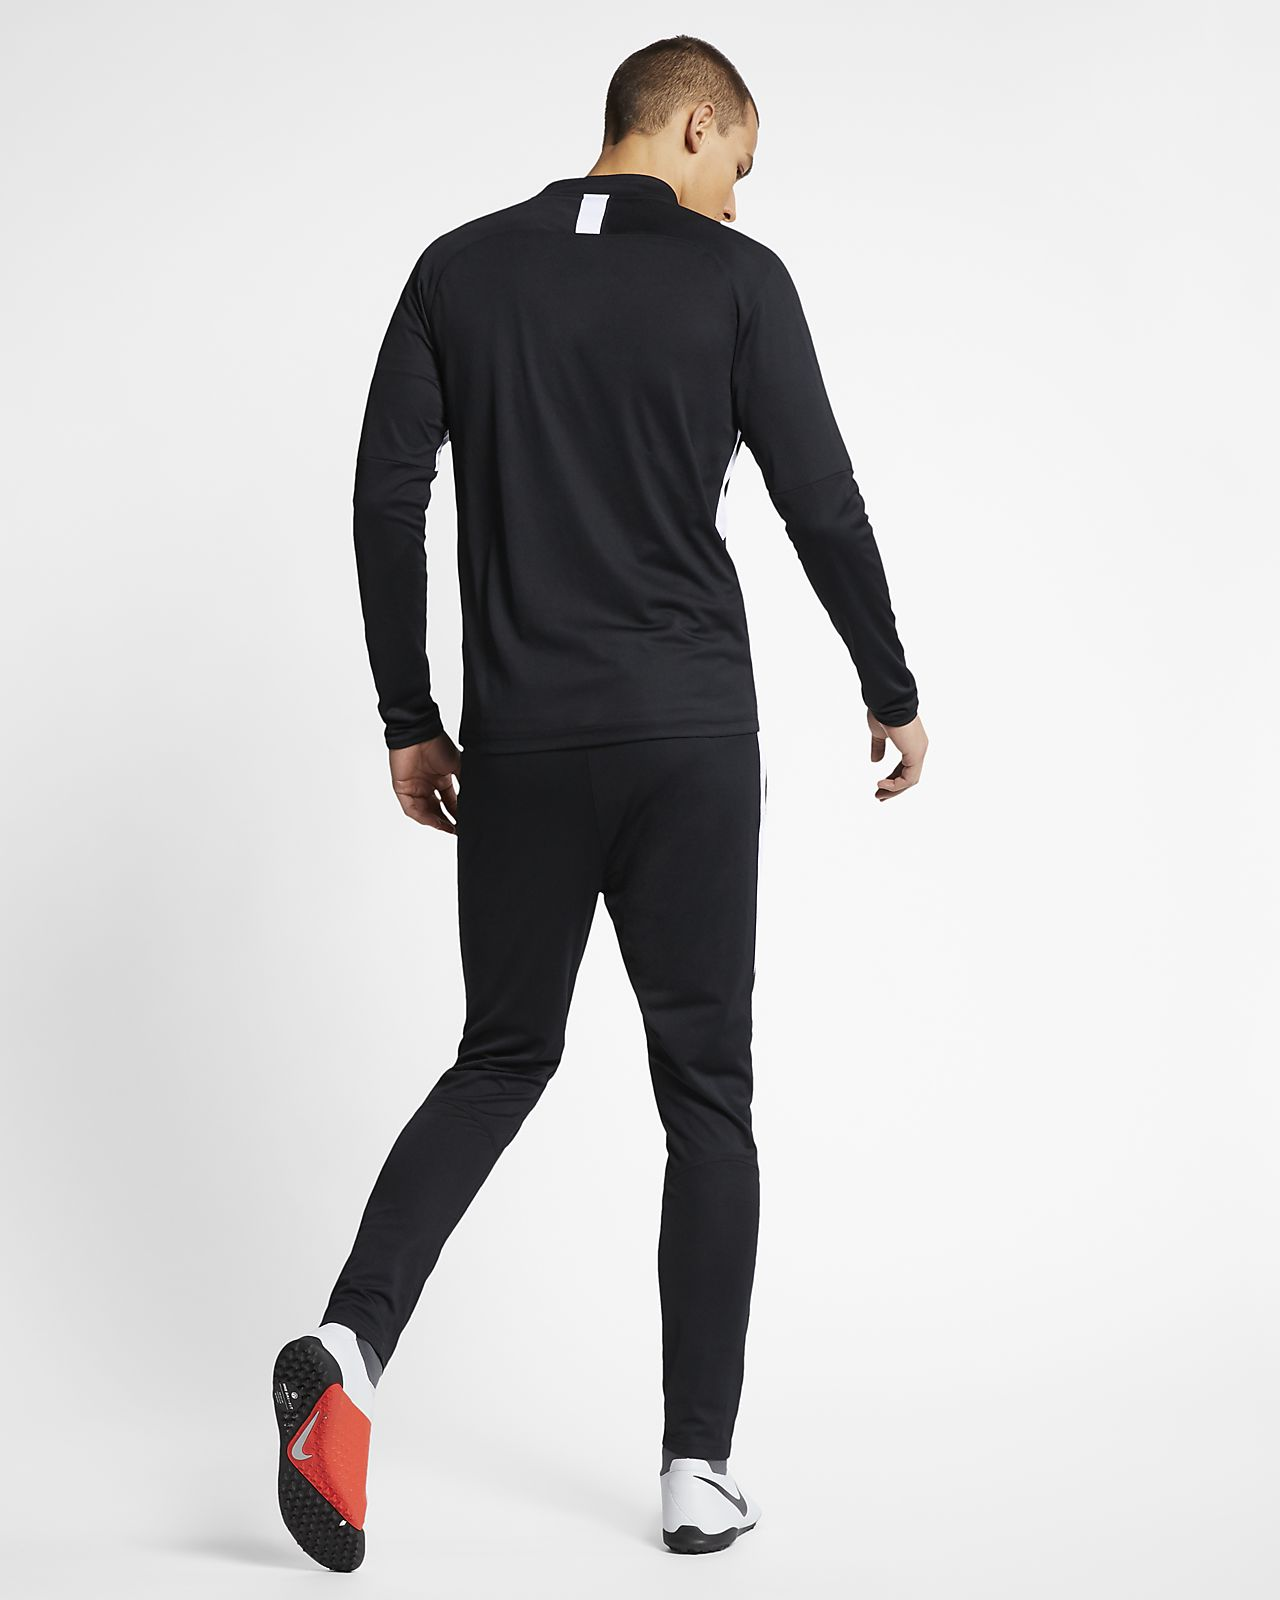 exclusive deals really cheap presenting Survêtement de football Nike Dri-FIT Academy pour Homme